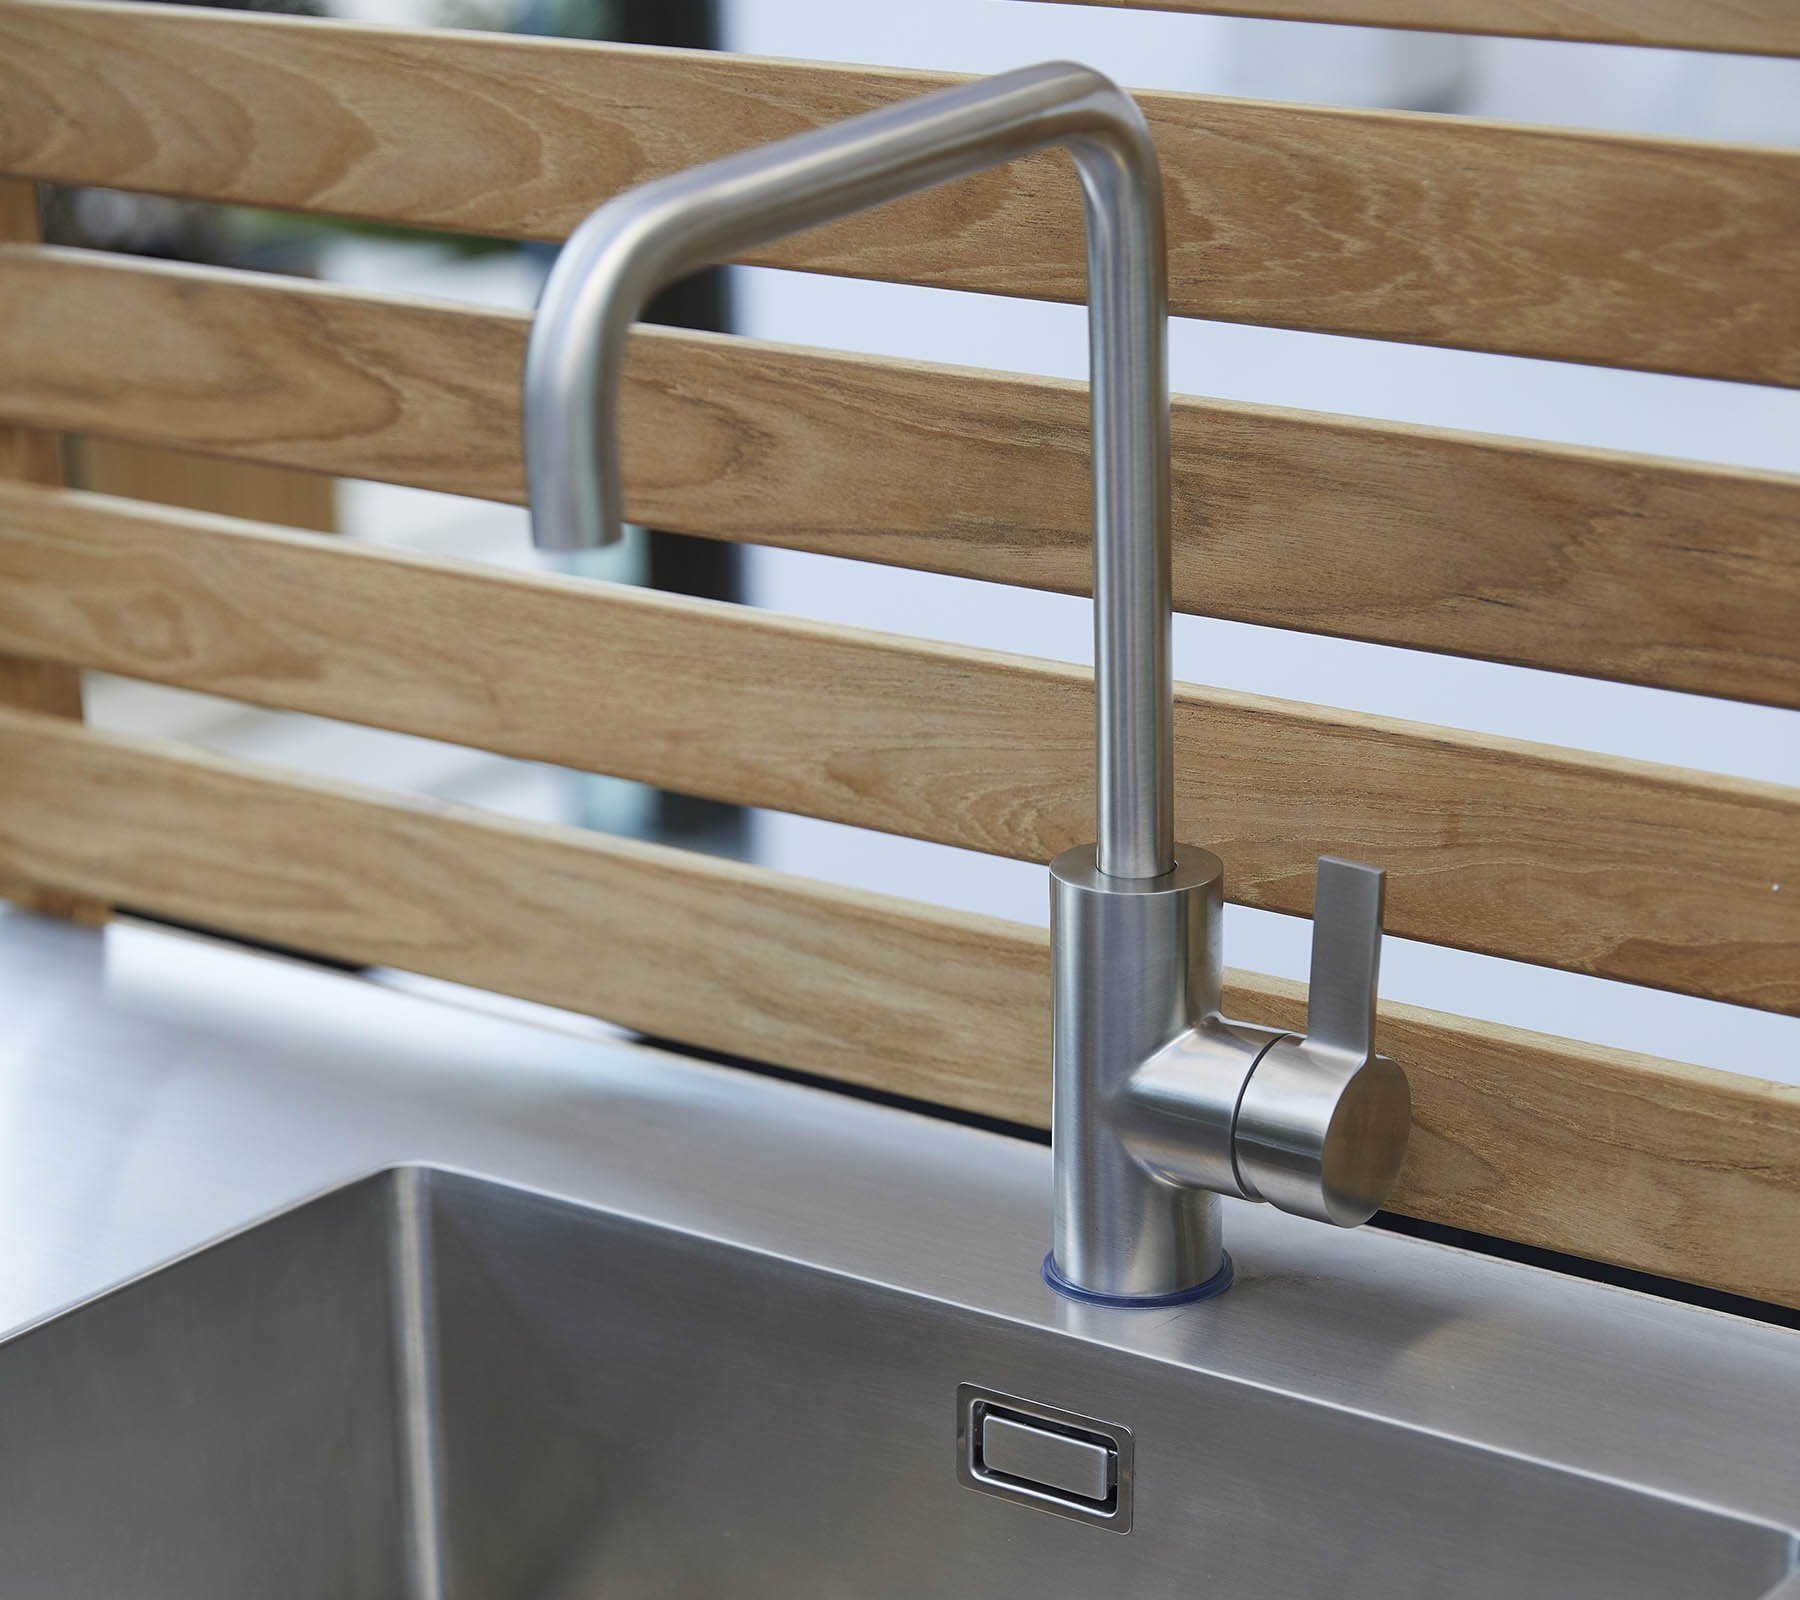 Teak Wall for Drop Kitchen accessory from Cane-line, designed by Cane-line Design Team